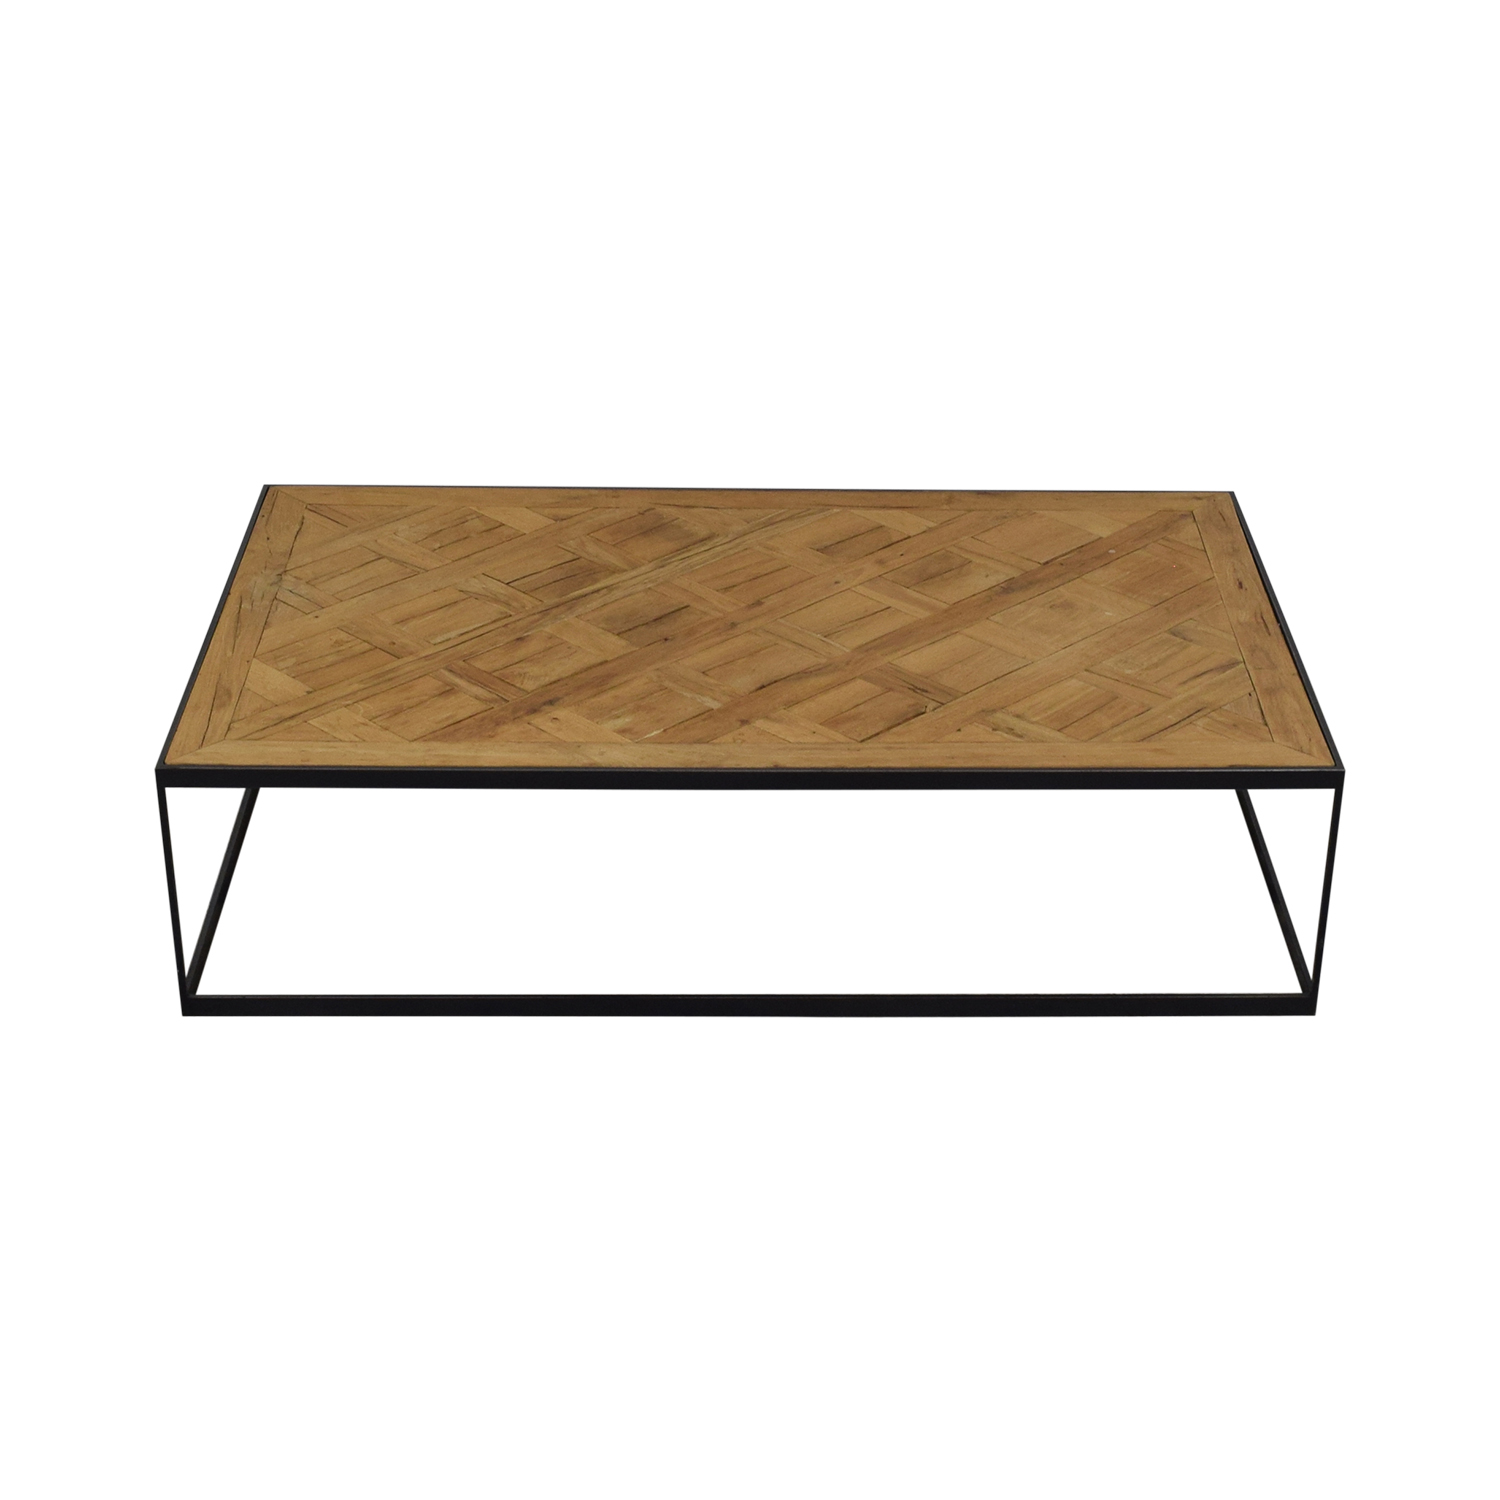 Restoration Hardware Restoration Hardware Square Coffee Table on sale